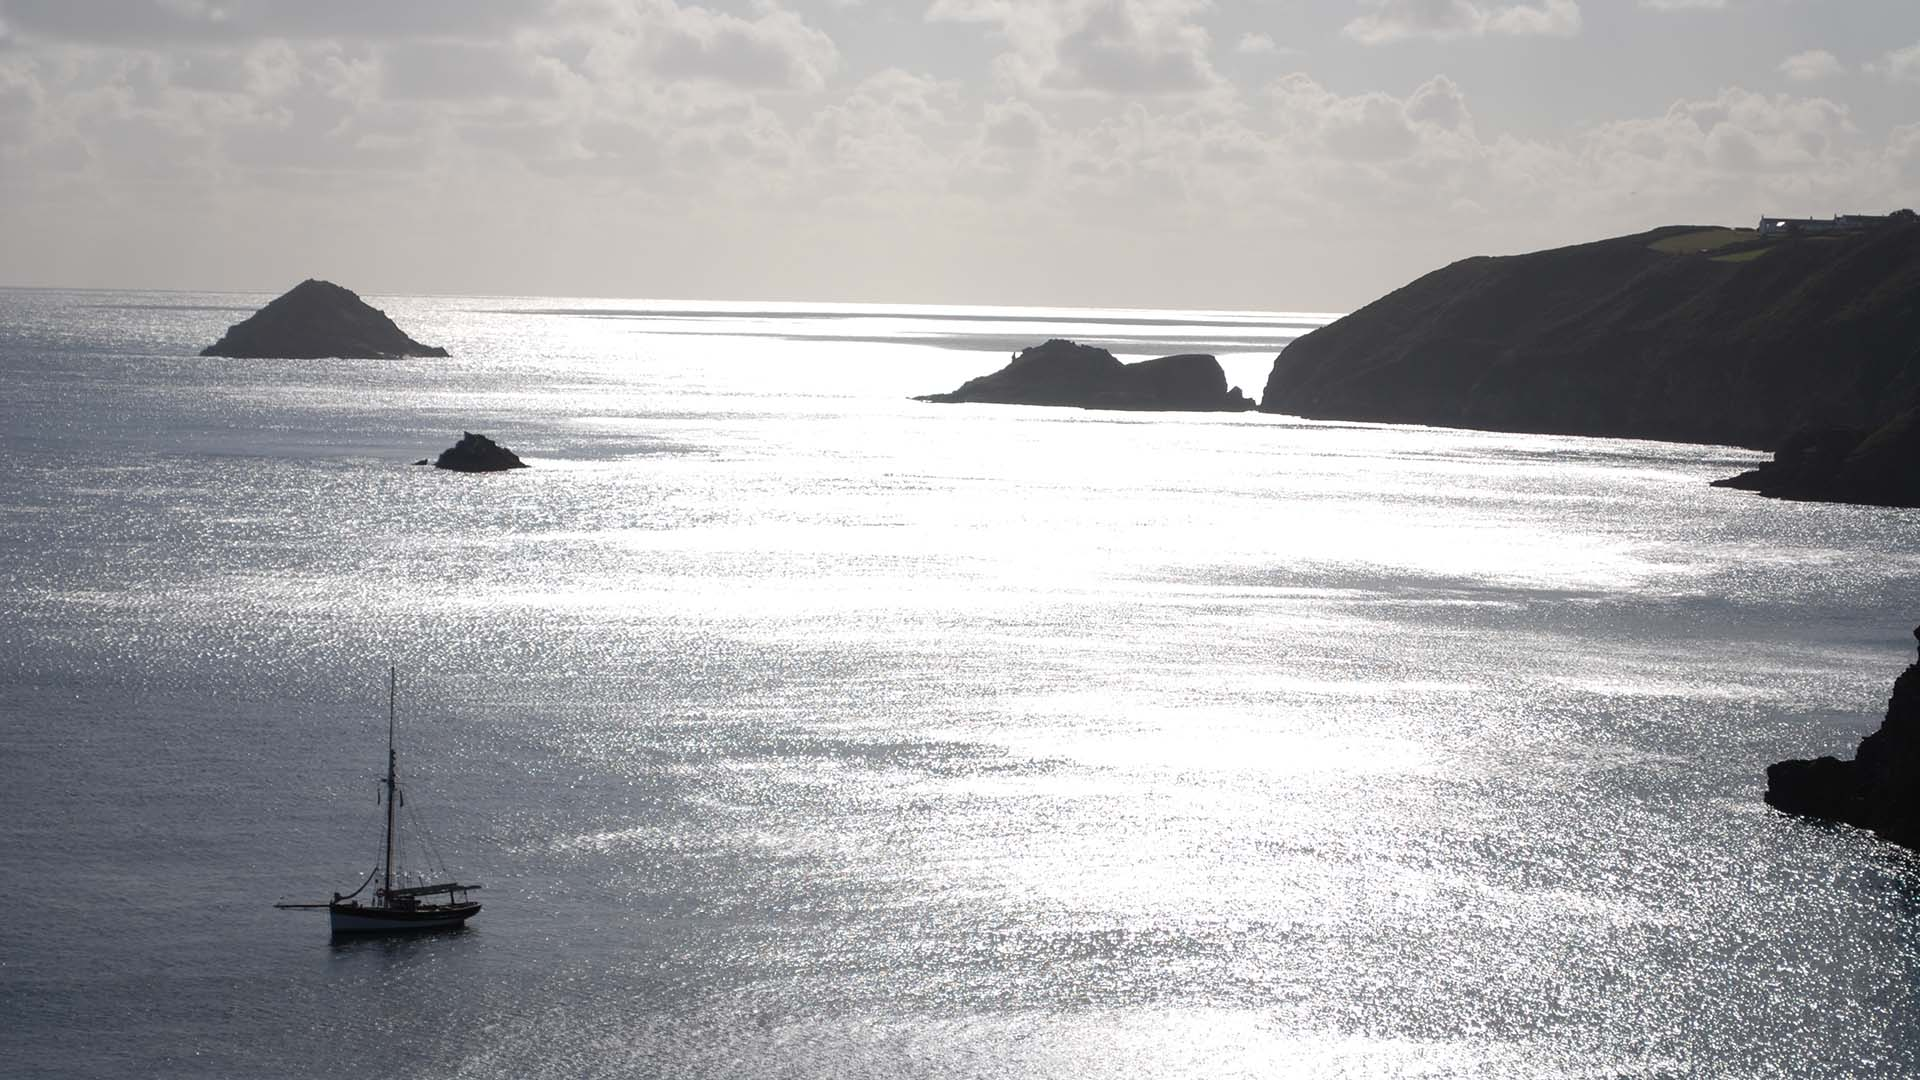 Amelie Rose at anchor in Dixcart Bay, Sark in the Channel Islands